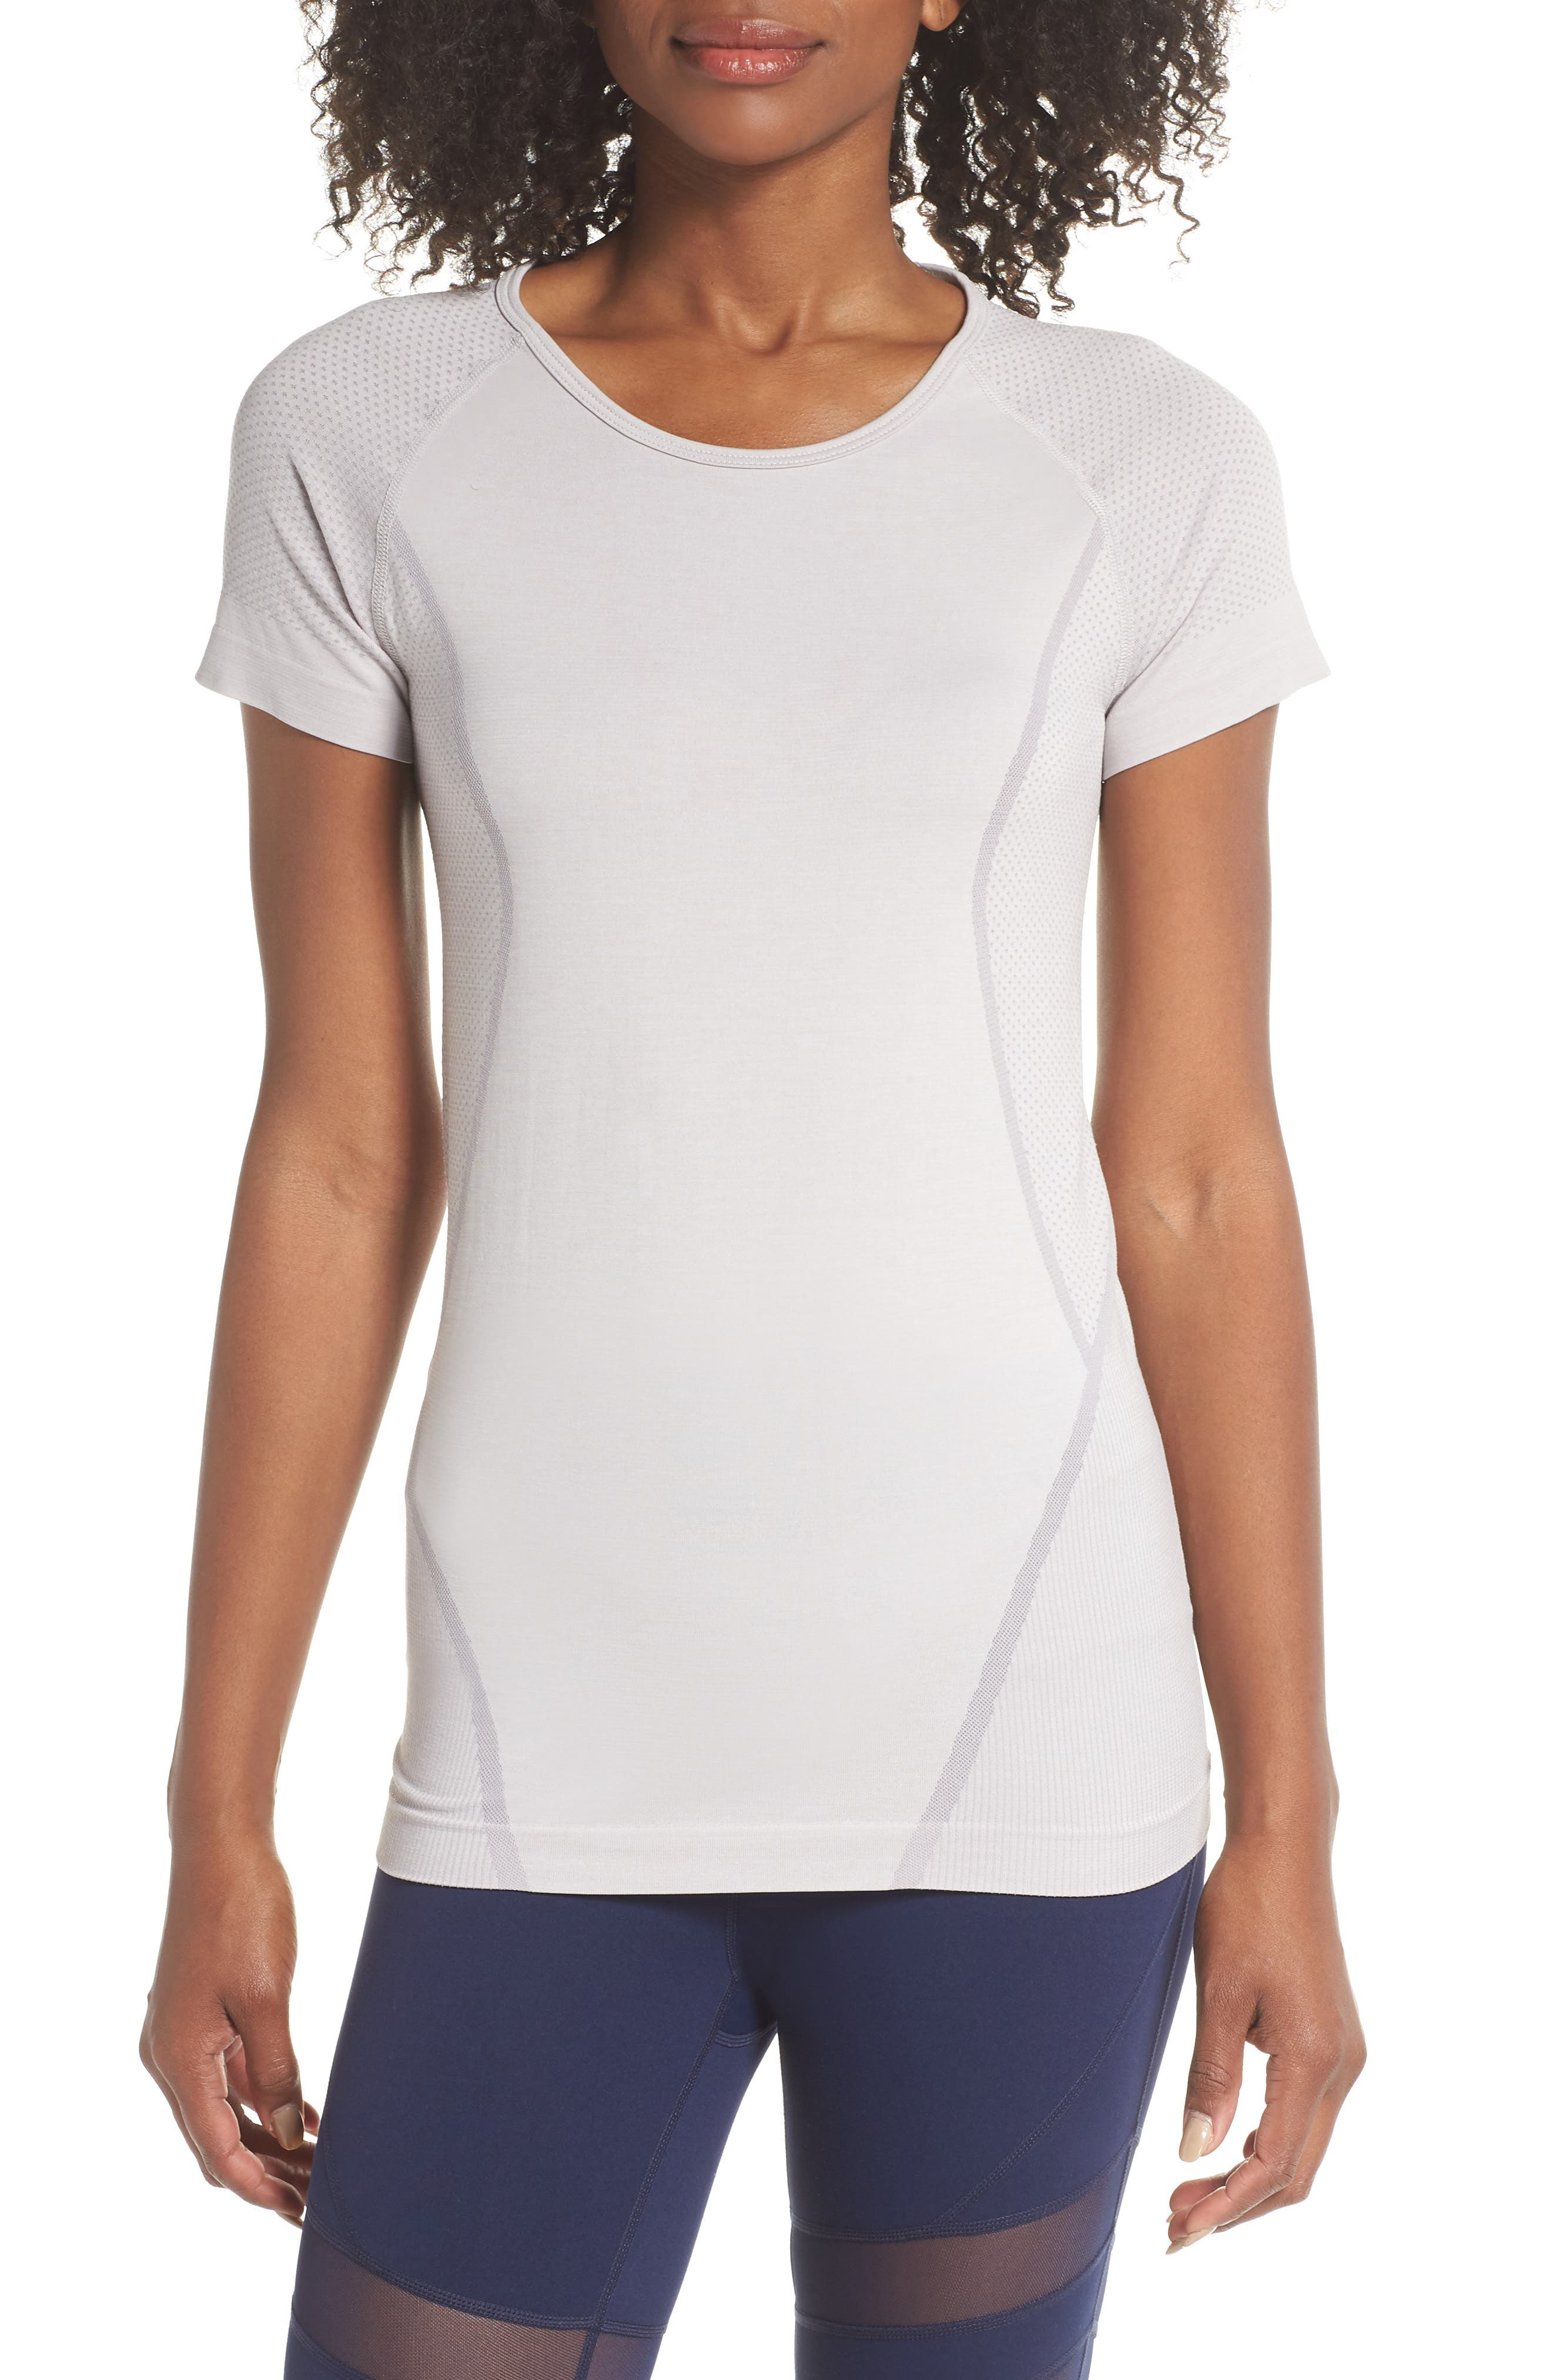 ZELLA, Stand Out Seamless Training Tee, Main thumbnail 1, color, 050